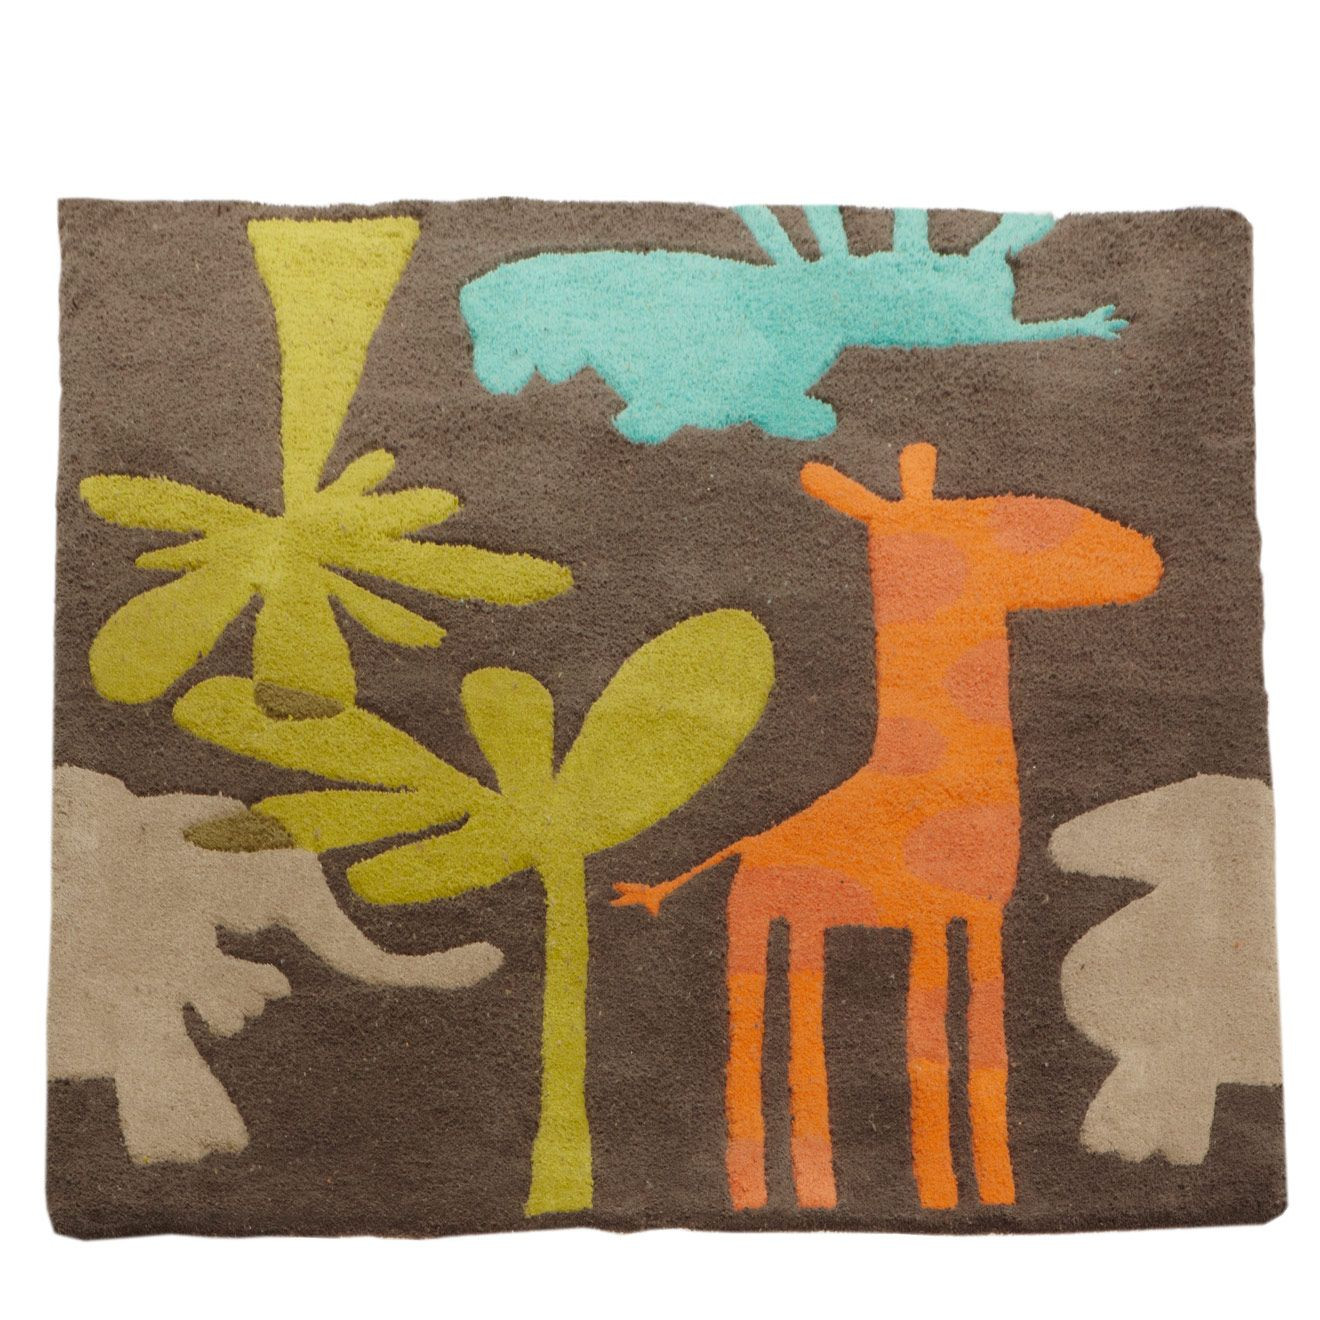 Tapis chambre enfant theme savane party VERTBAUDET : Avis